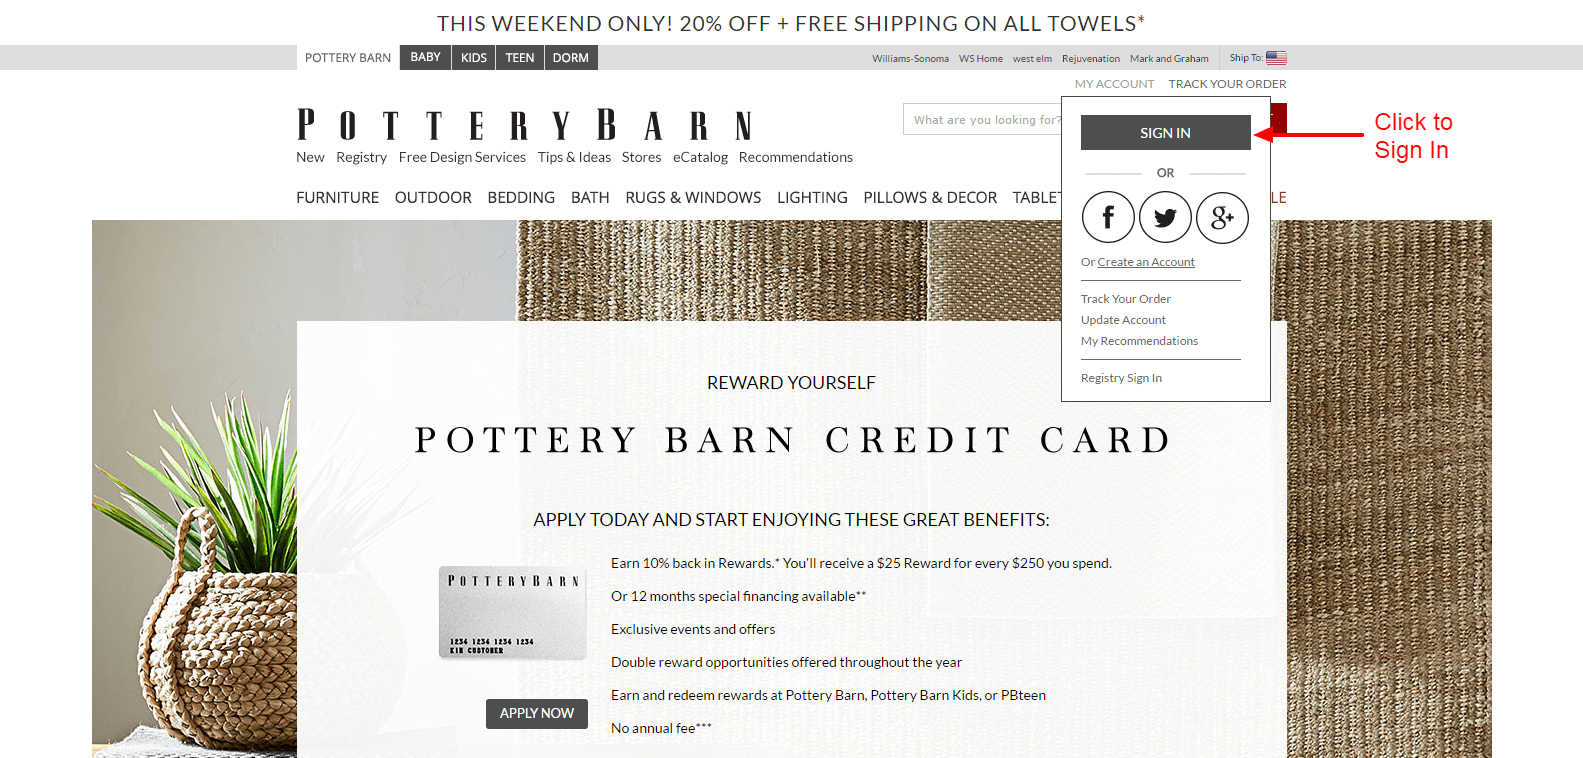 Pottery barn credit card phone number